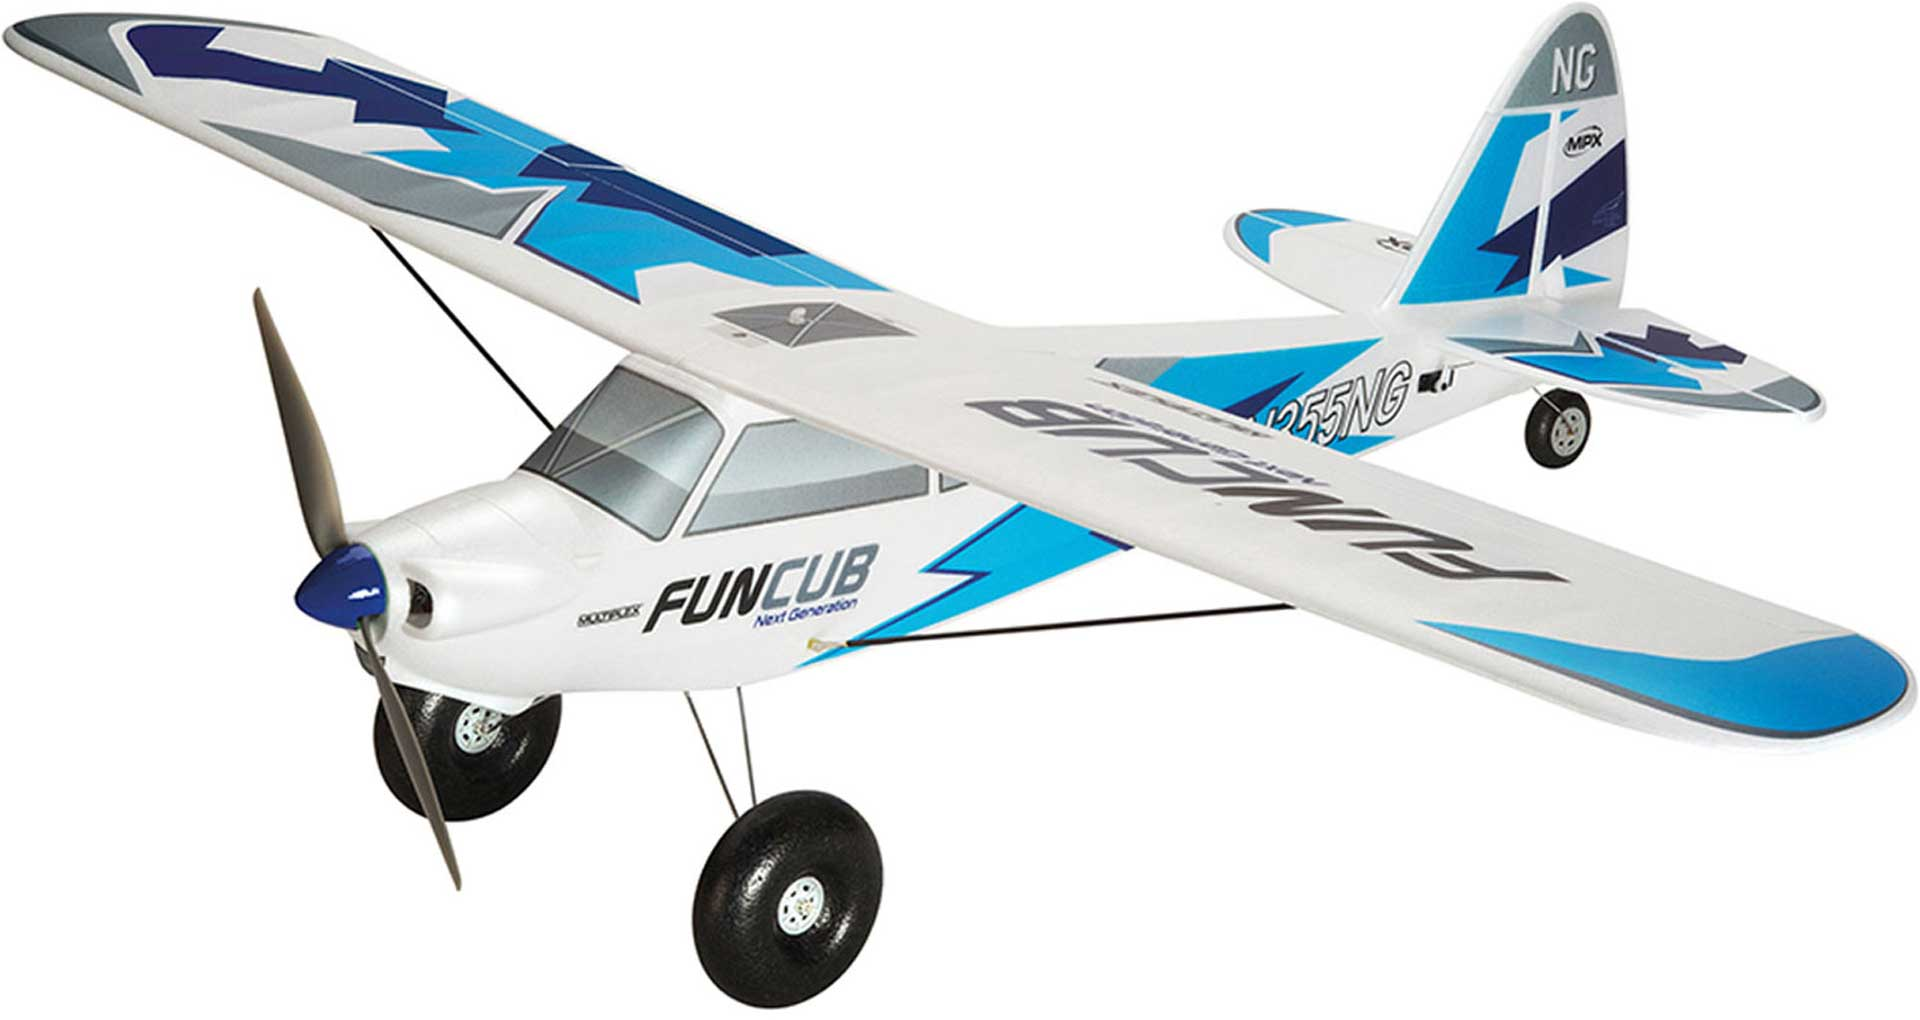 MULTIPLEX FUNCUB NG BLUE KIT